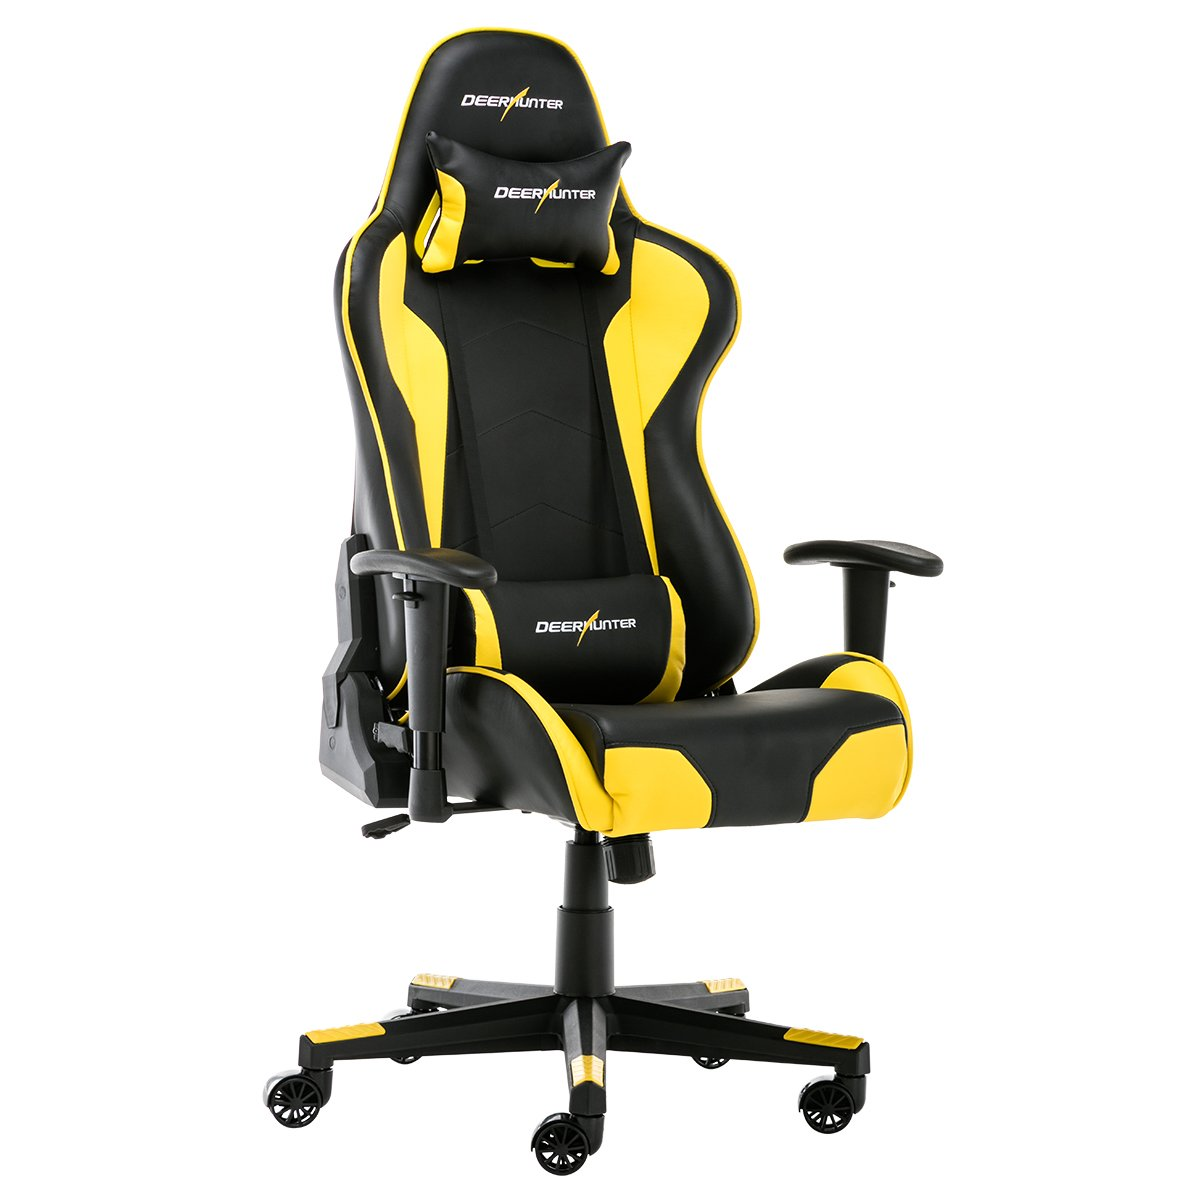 Deerhunter Gaming Chair, Leather Office Chair, High Back Ergonomic Racing Chair, Adjustable Computer Desk Swivel Chair with Headrest and Lumbar Support (Yellow&Black)